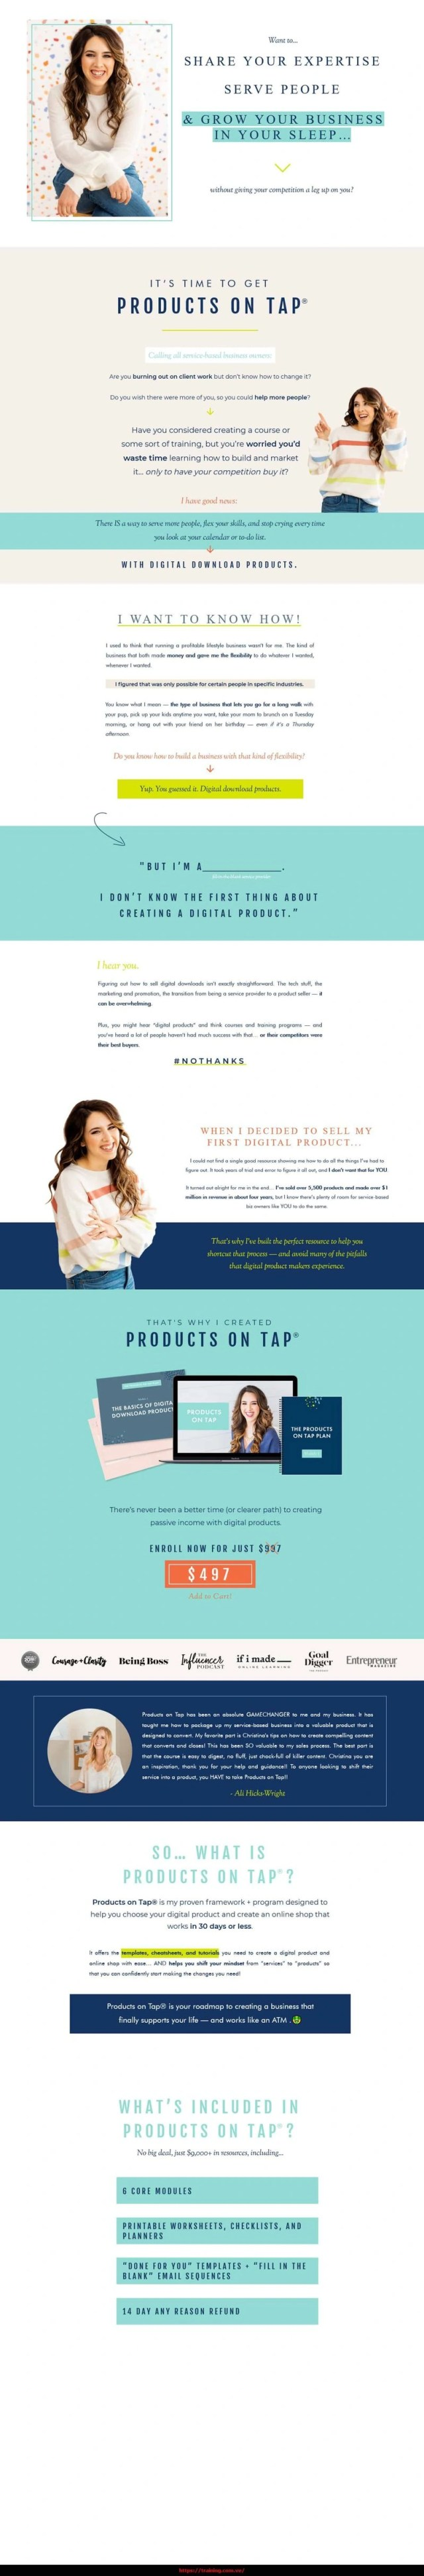 Products on Tap 2.0 by Christina Scalera sales page